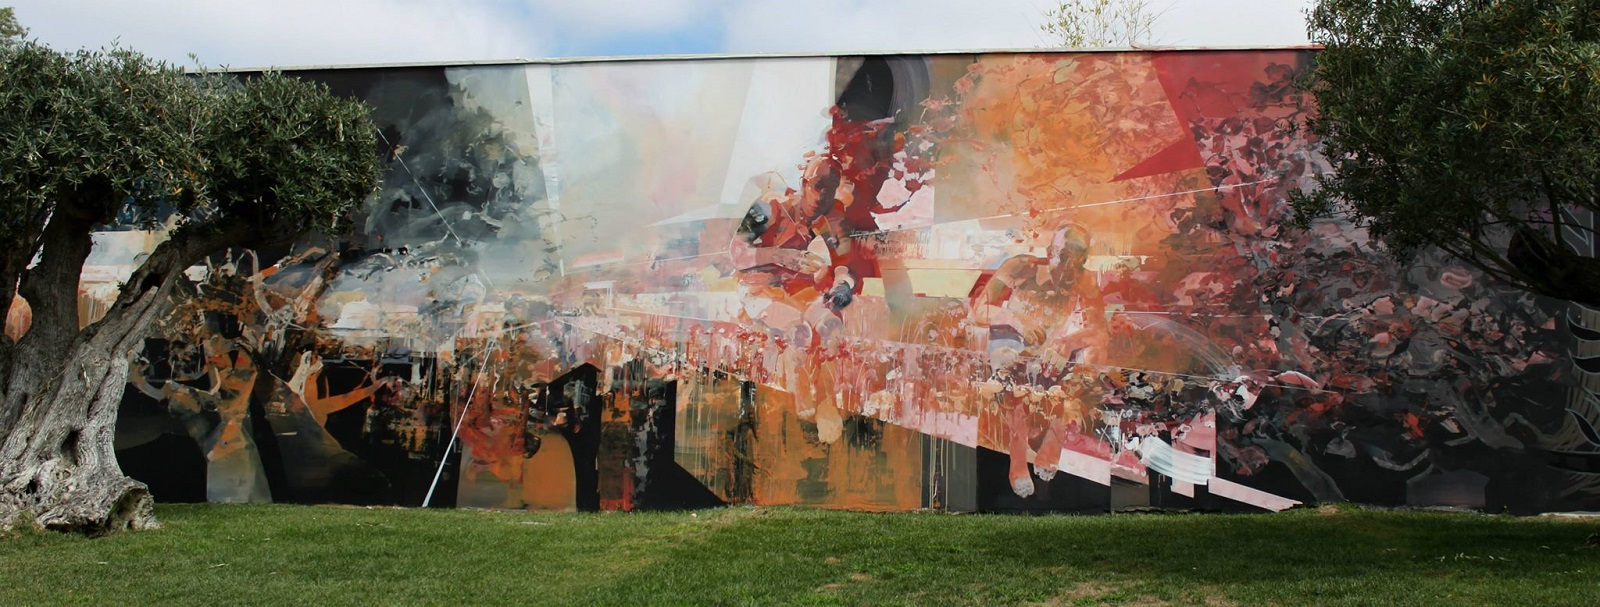 robert-proch-tweens-new-mural-02